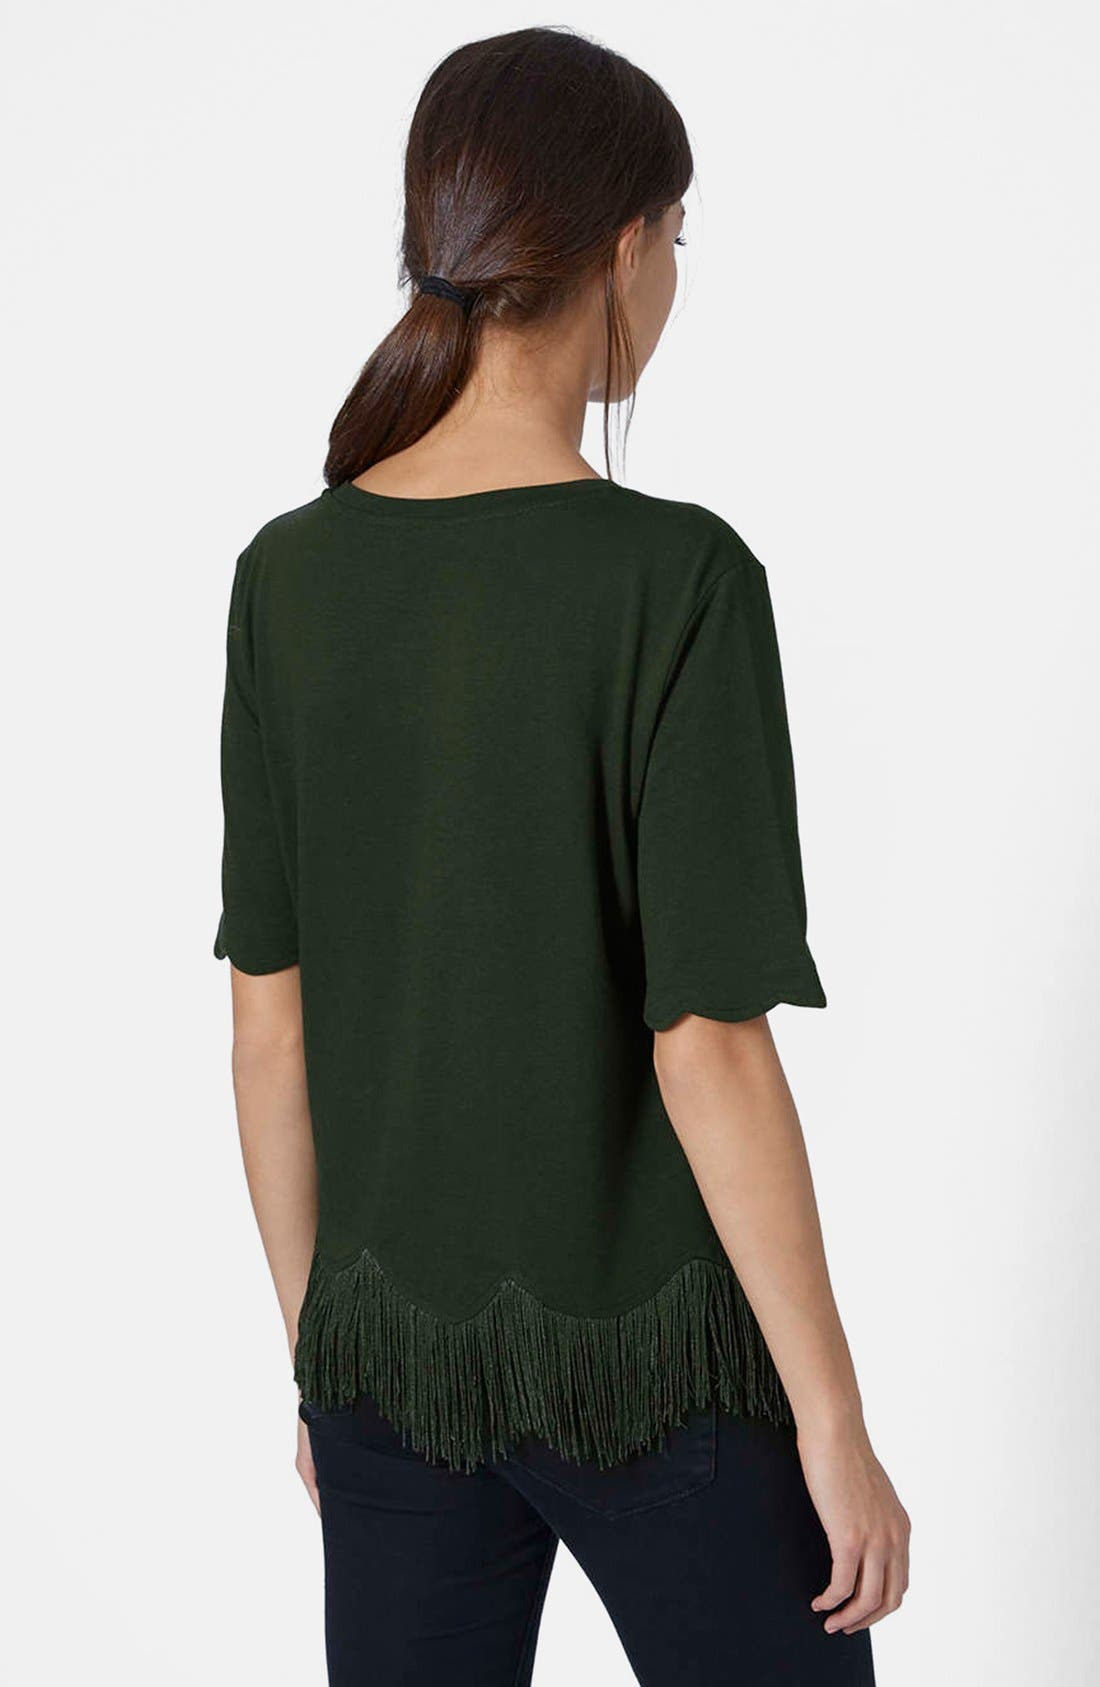 TOPSHOP, Fringe Scallop Tee, Alternate thumbnail 5, color, 301